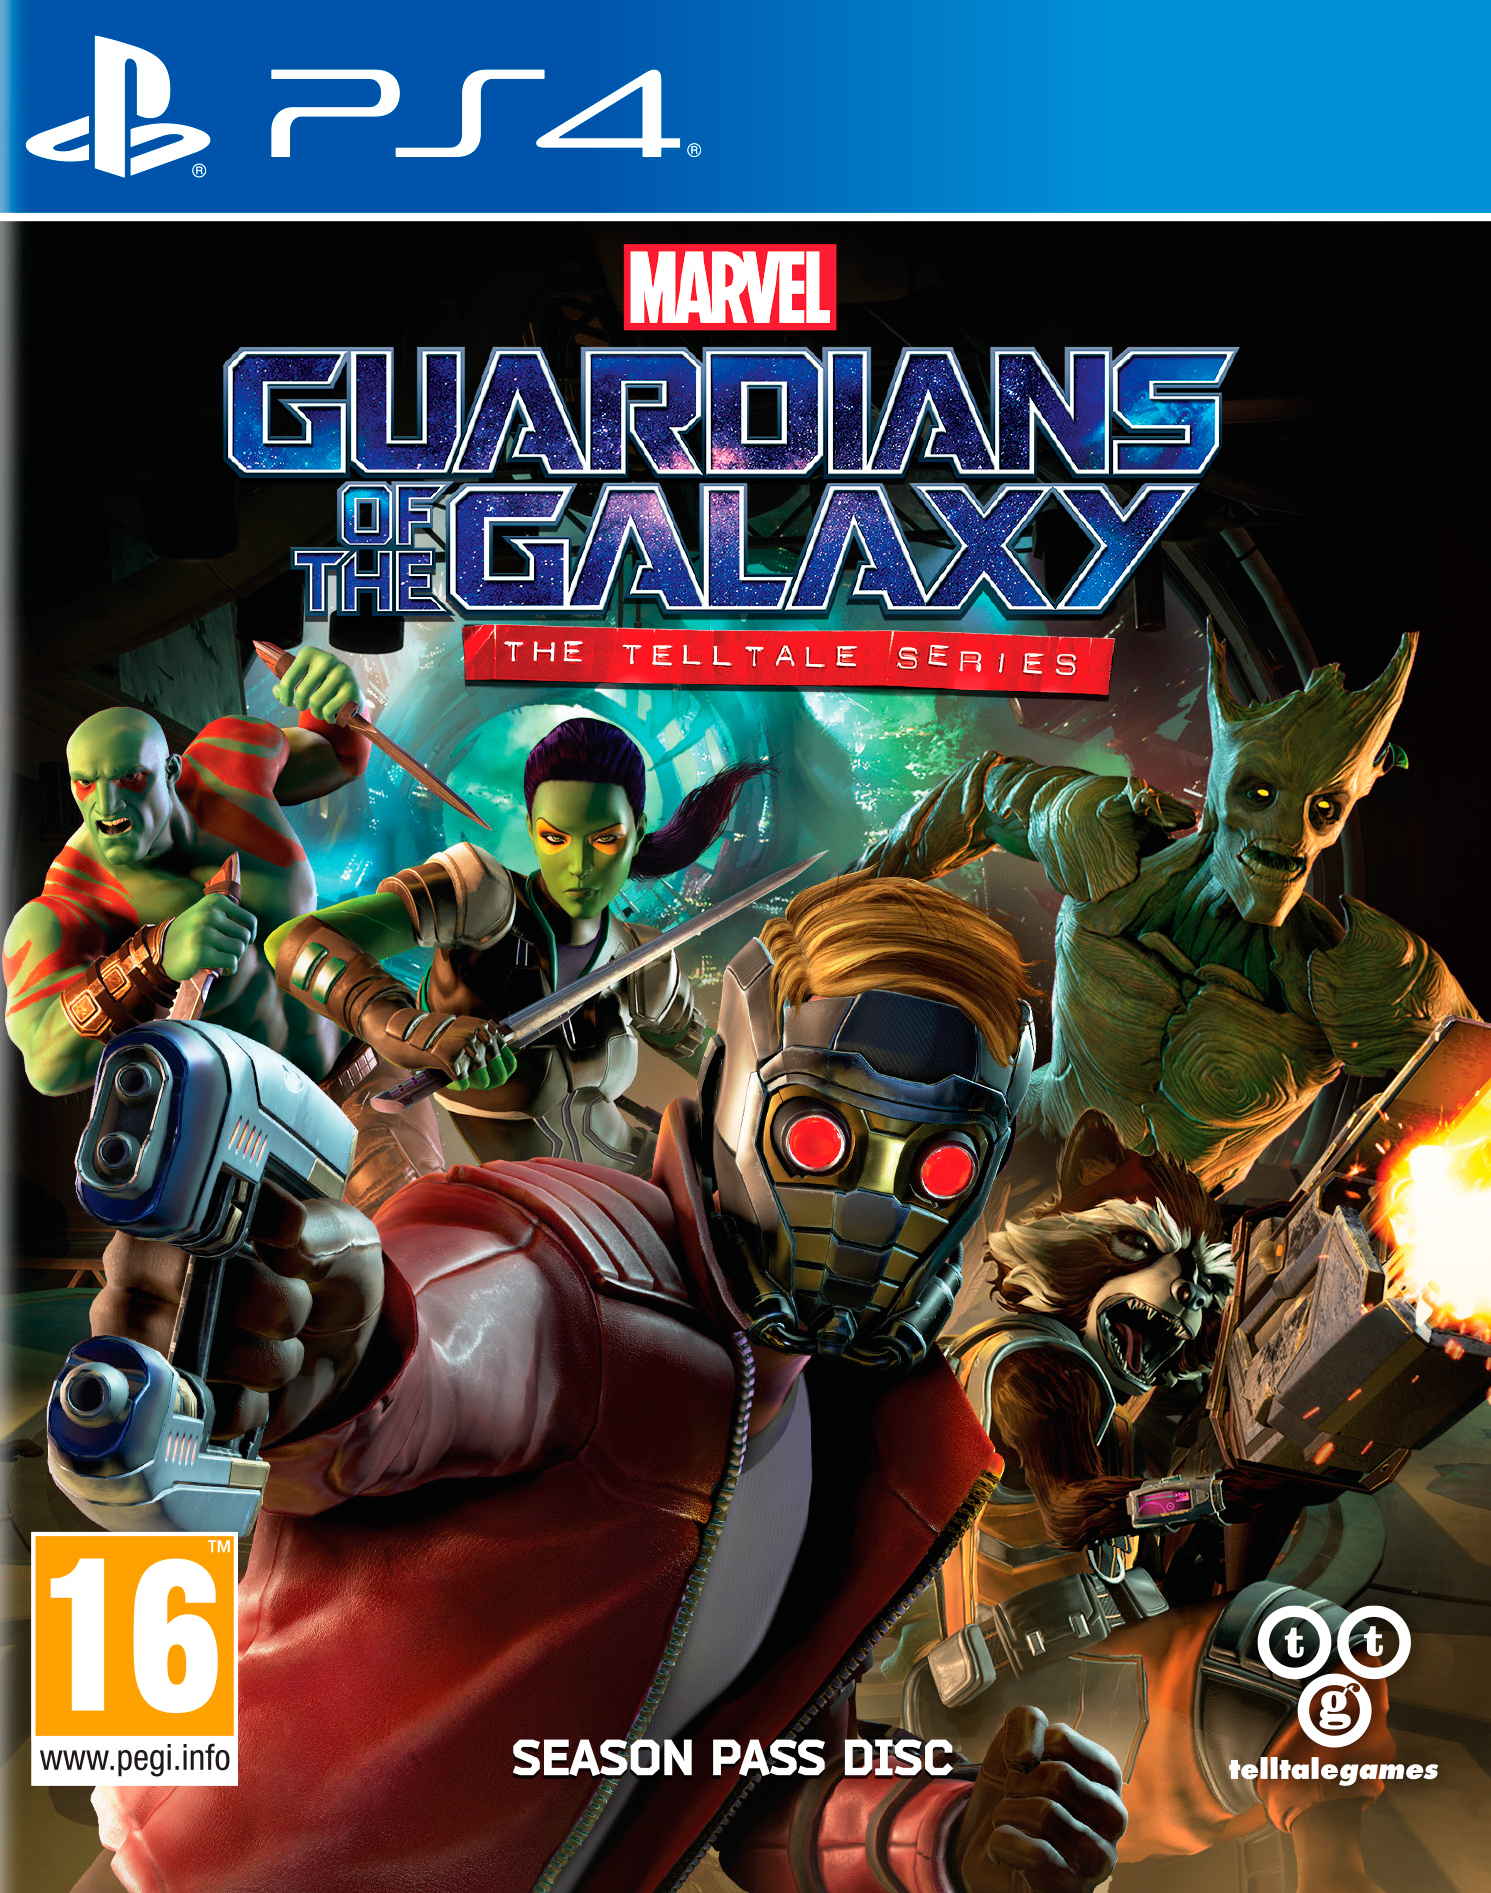 Marvel's Guardians of the Galaxy (Стражи галактики): The Telltale Series